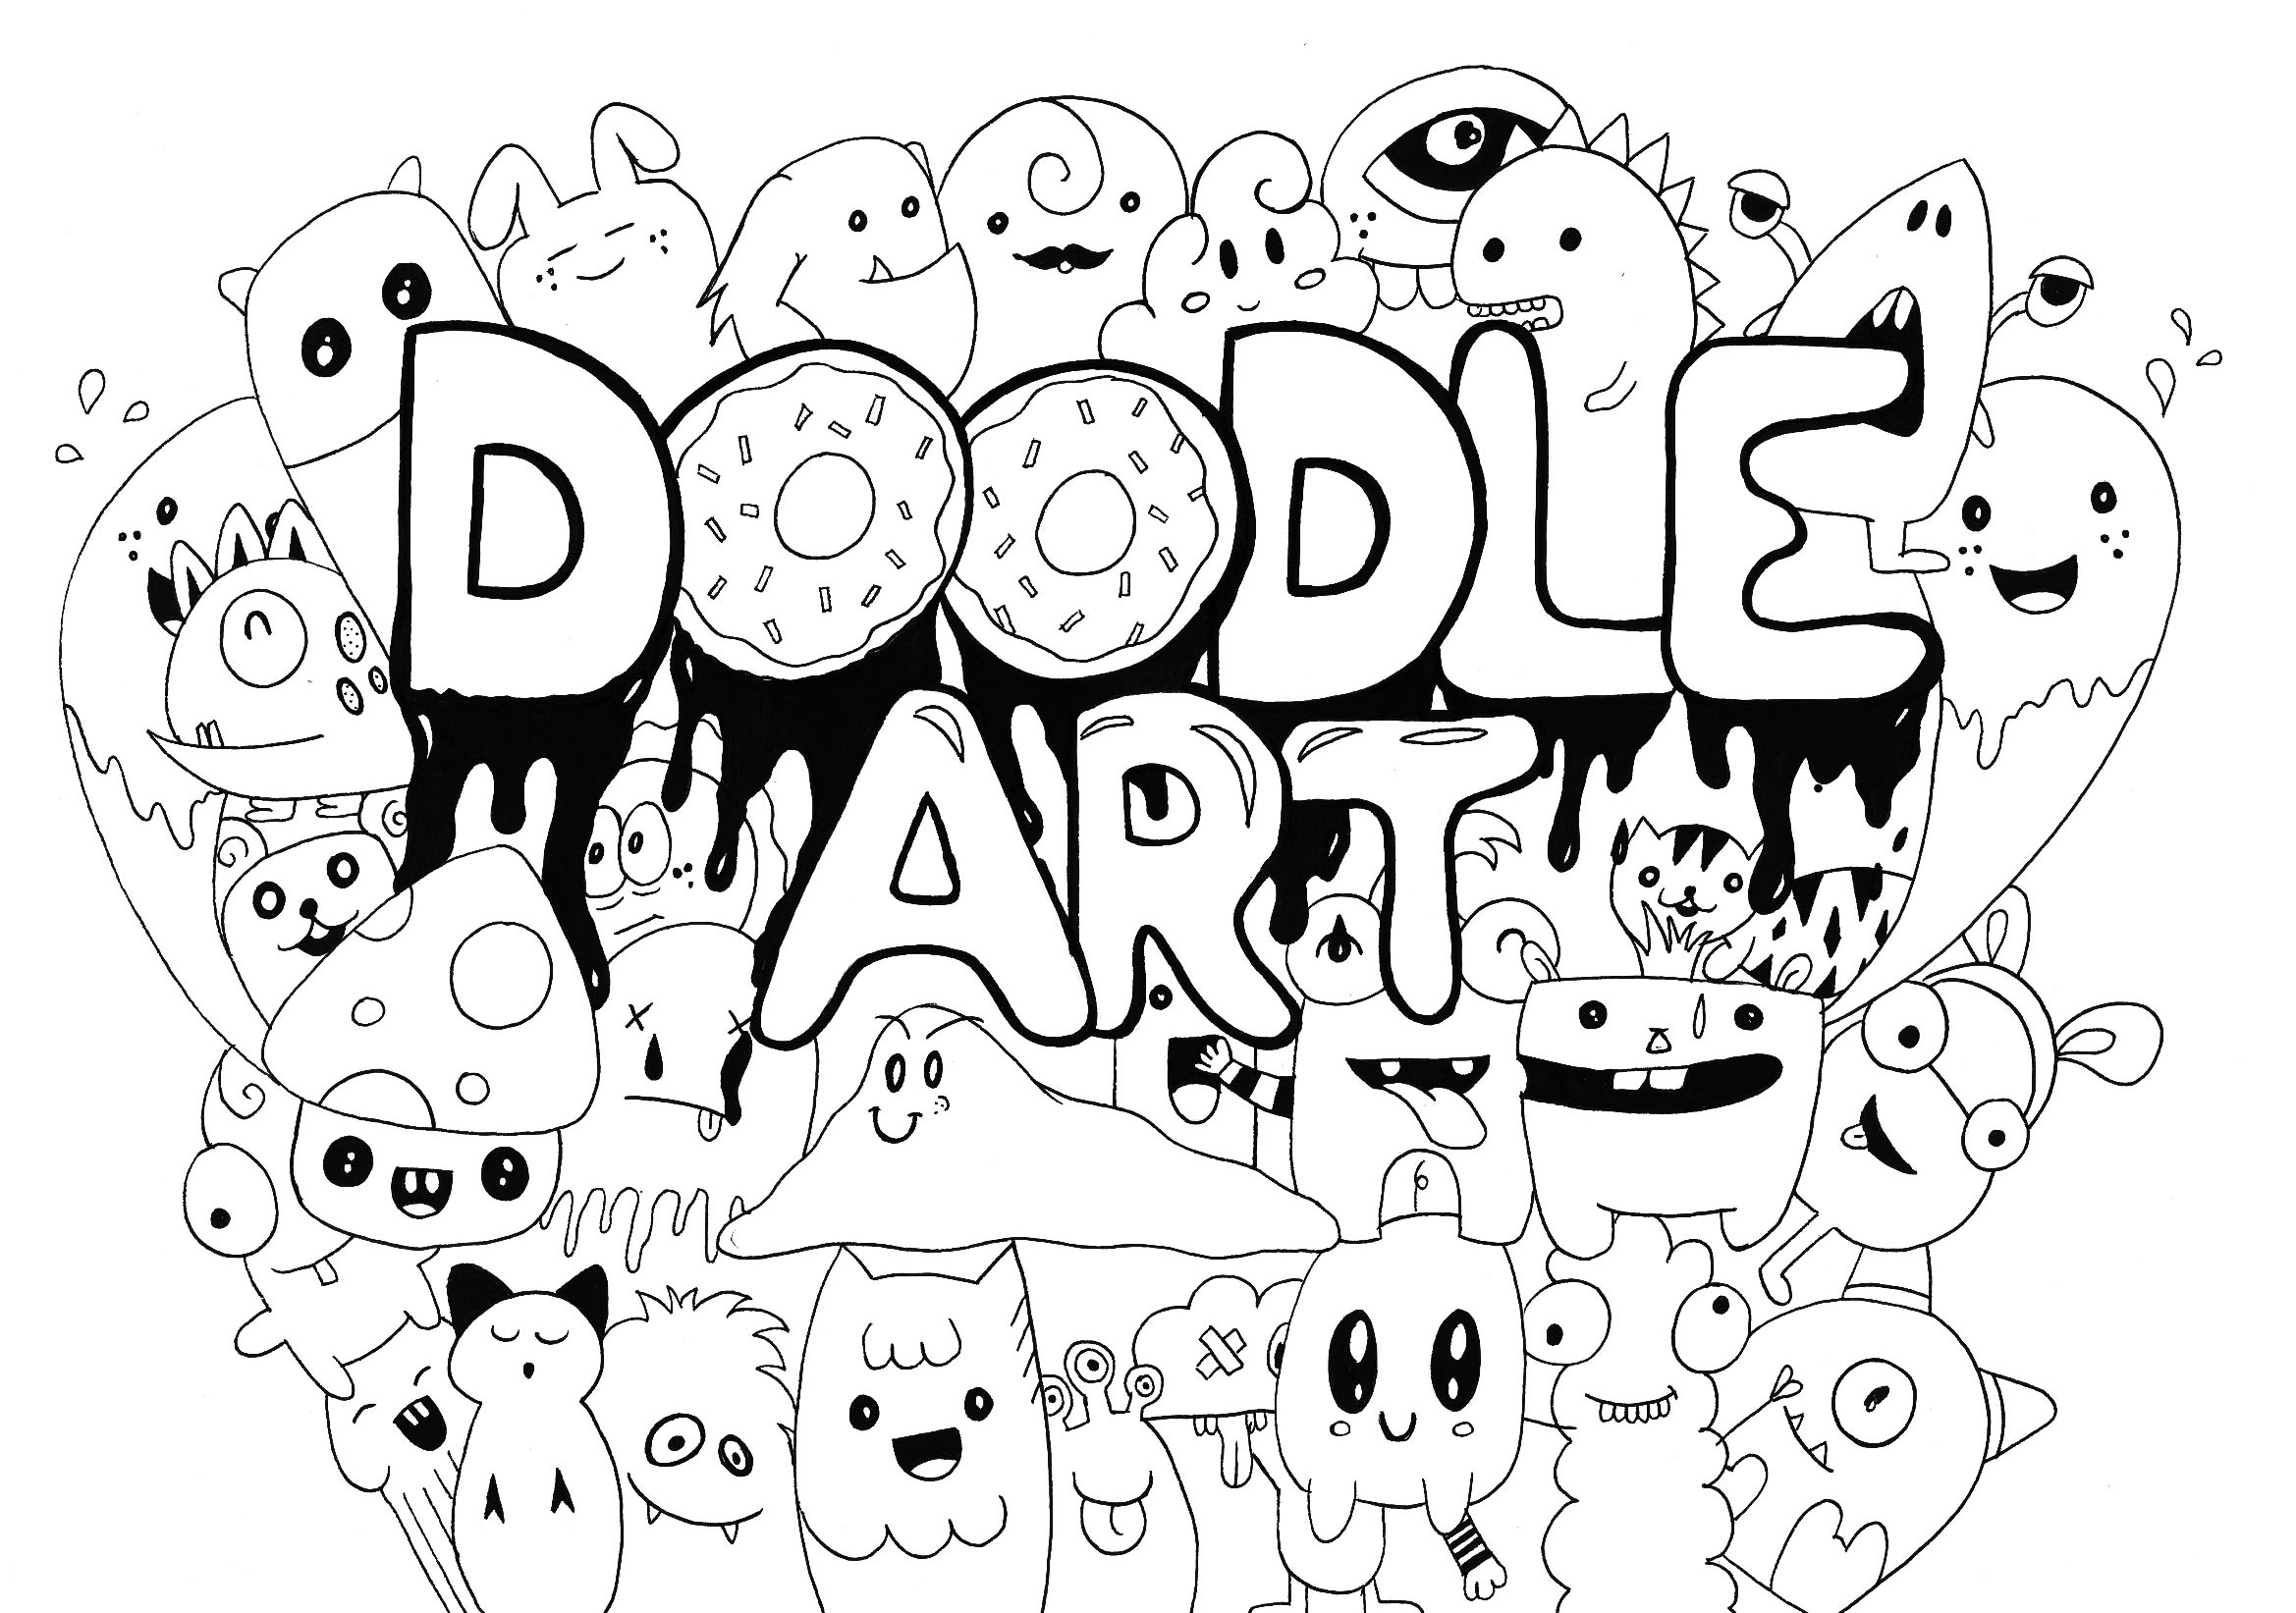 Kawaii Doodle Art Coloriage Kawaii Coloriages Pour Enfants